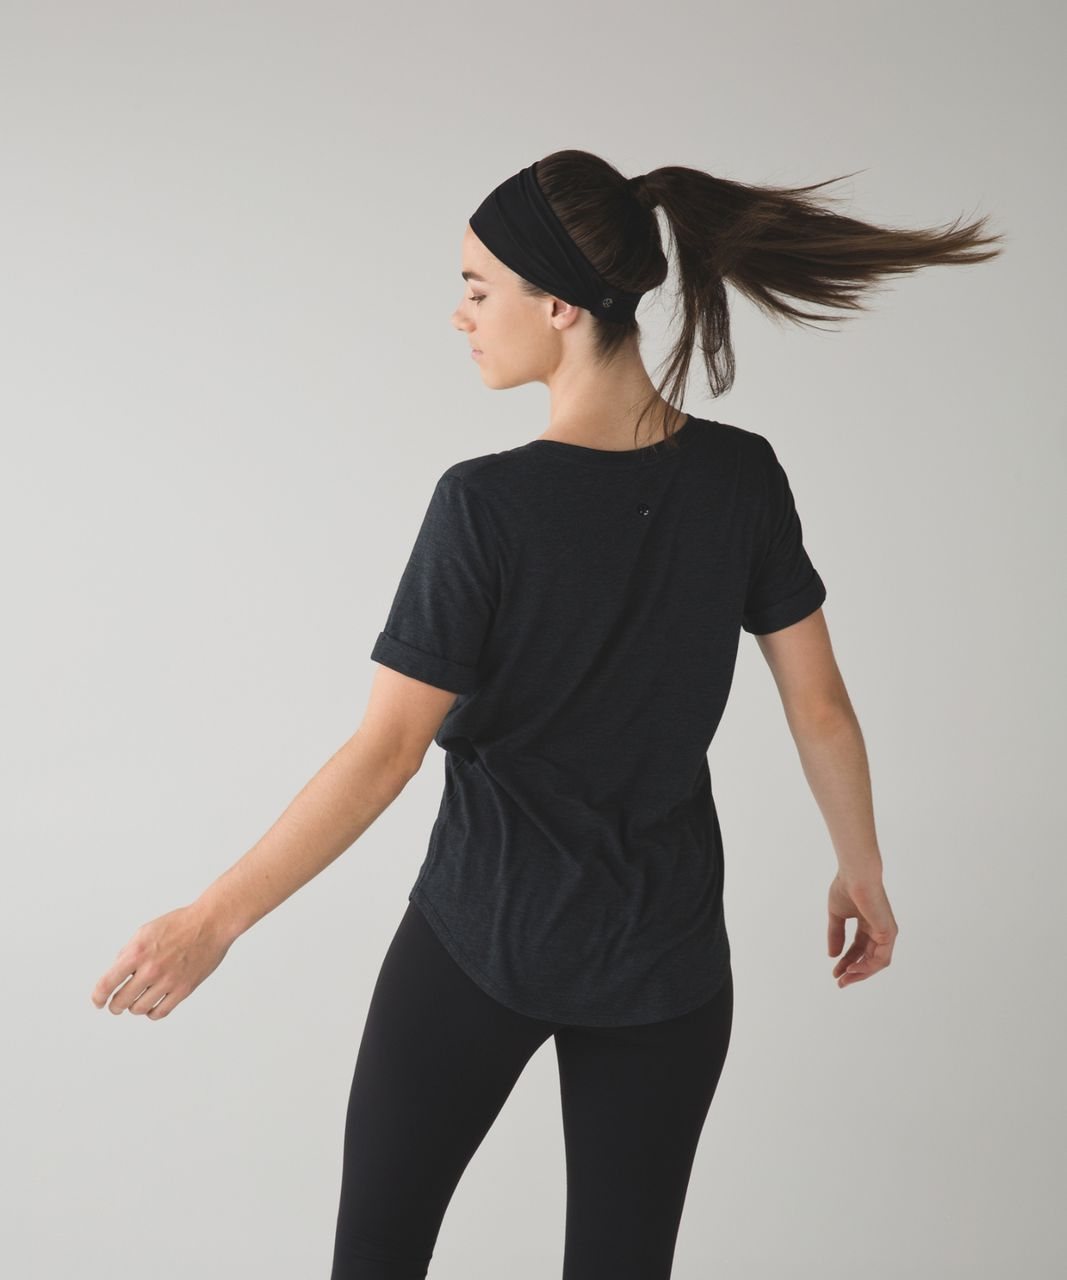 Lululemon Fringe Fighter Headband *Mesh - Black